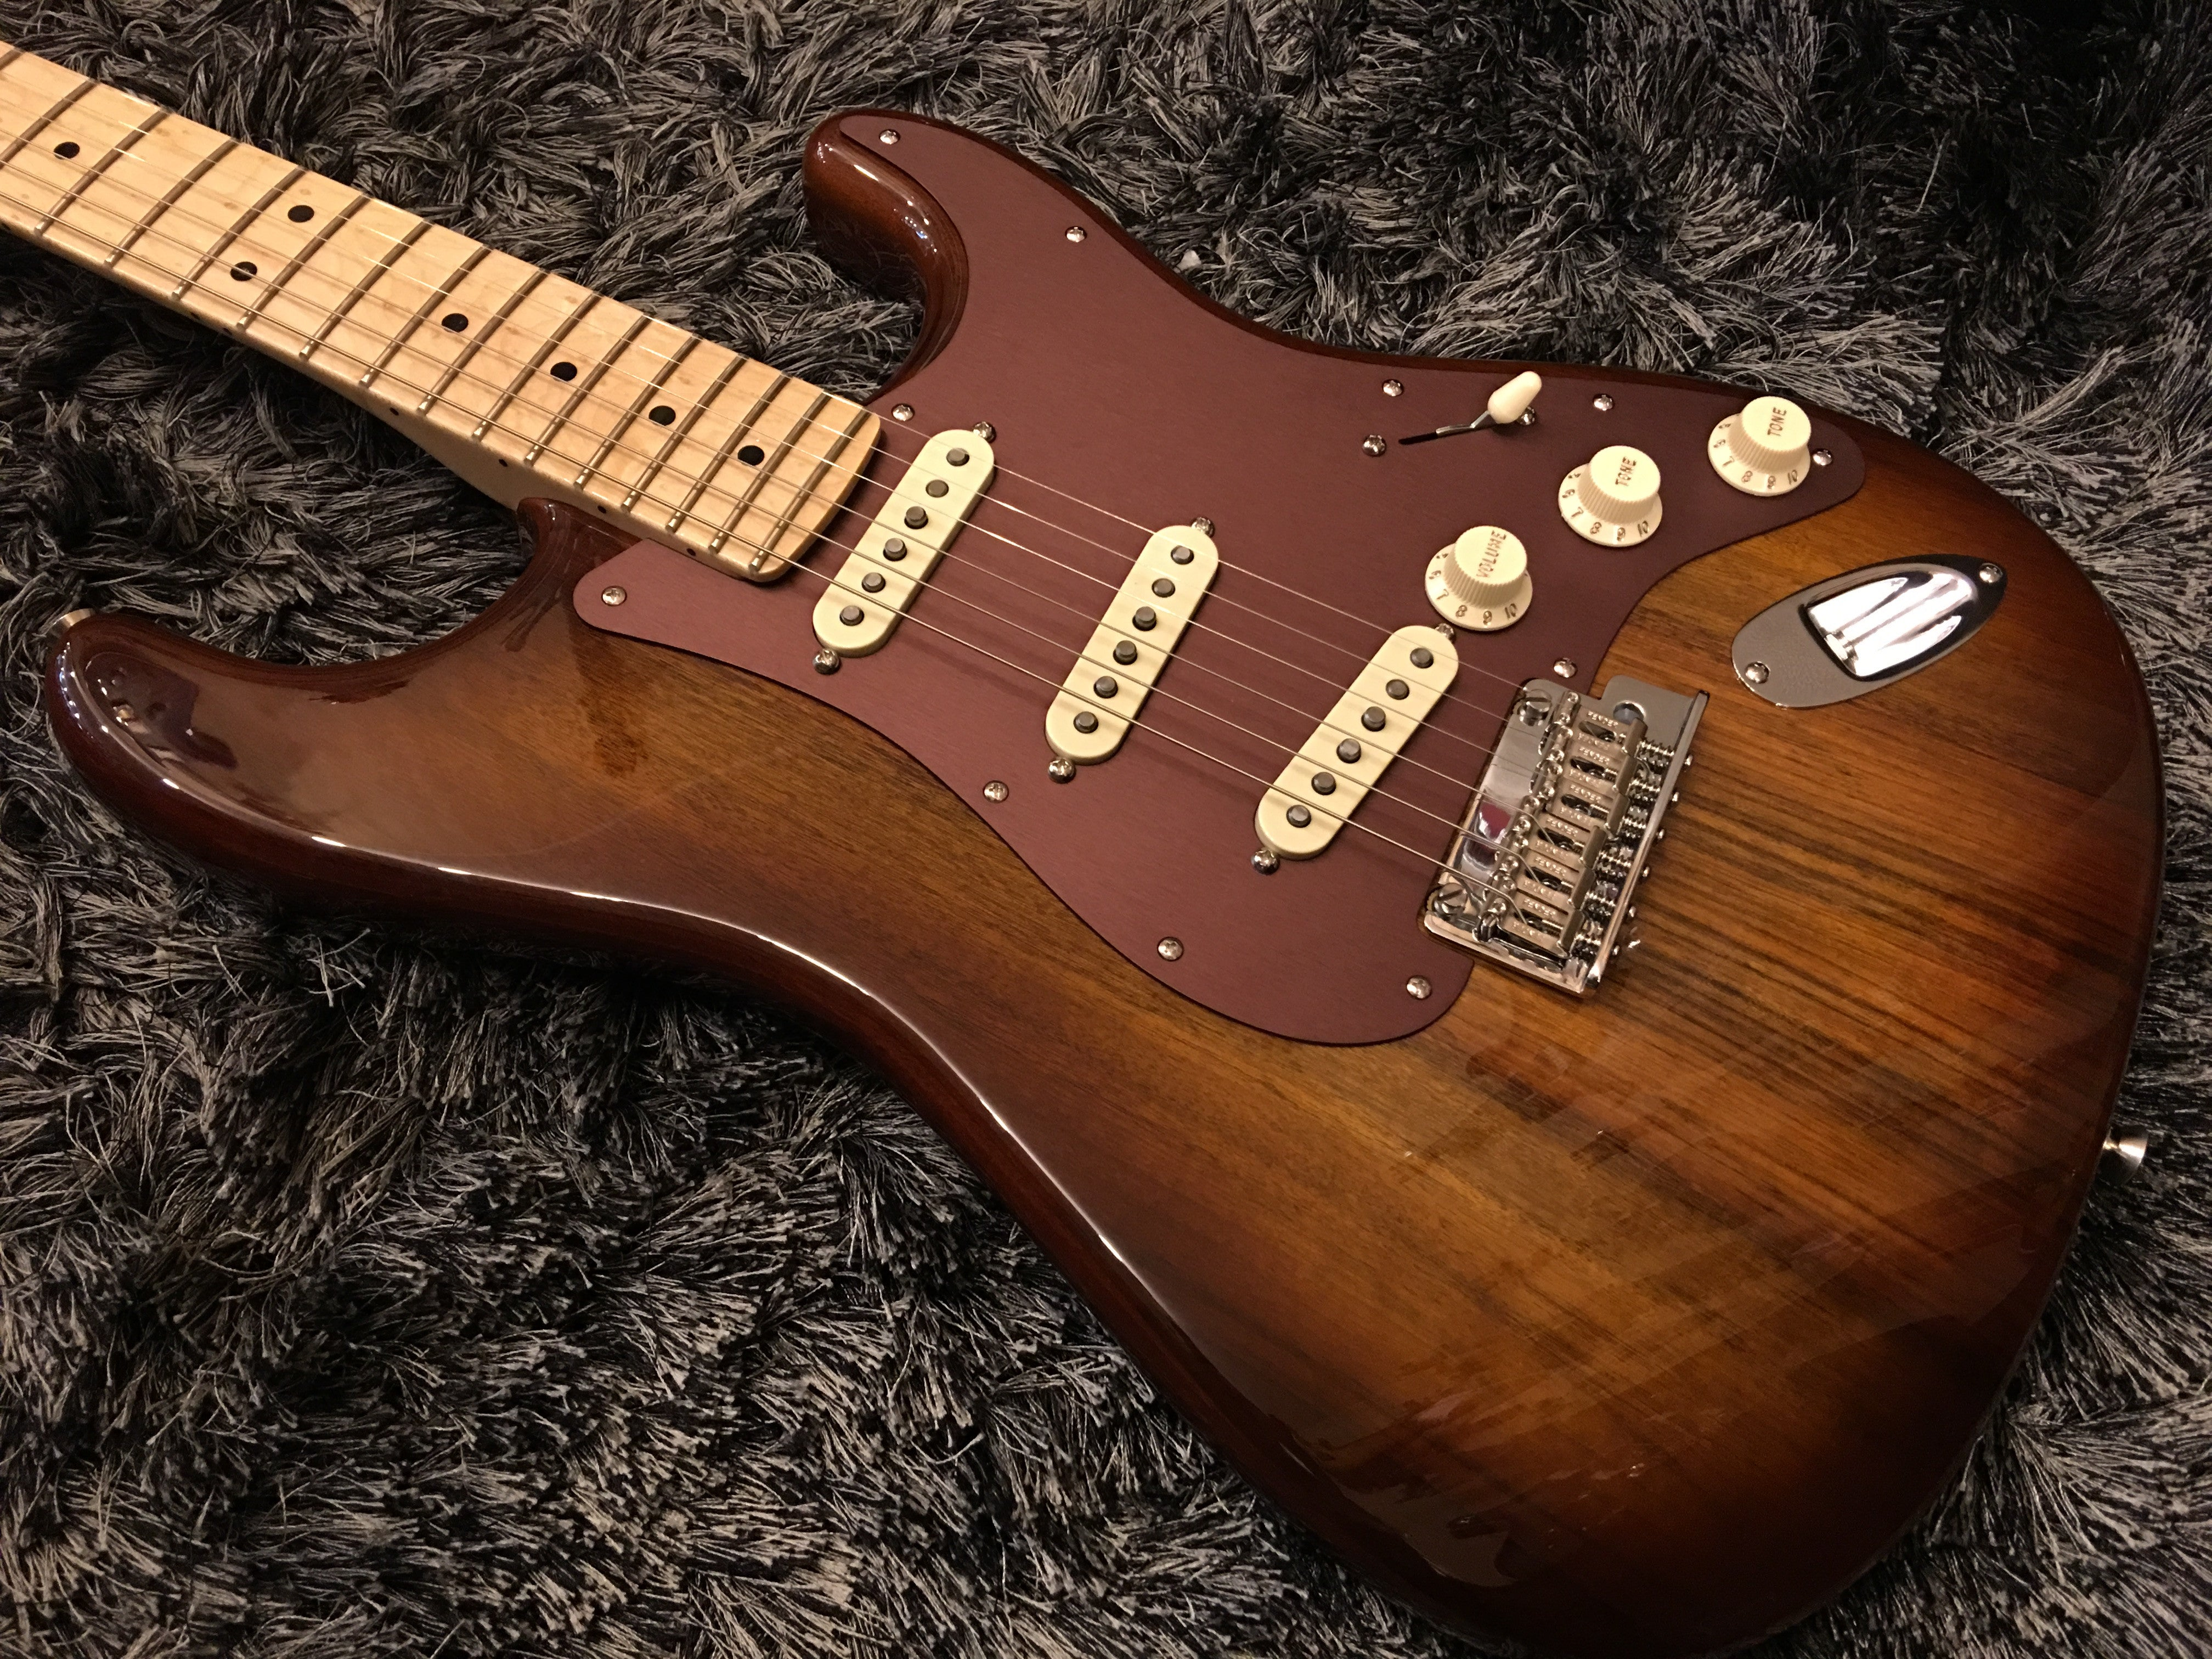 Fender Shedua top 2017 limited collection HIENDGUITAR.COM - HIENDGUITAR.COM